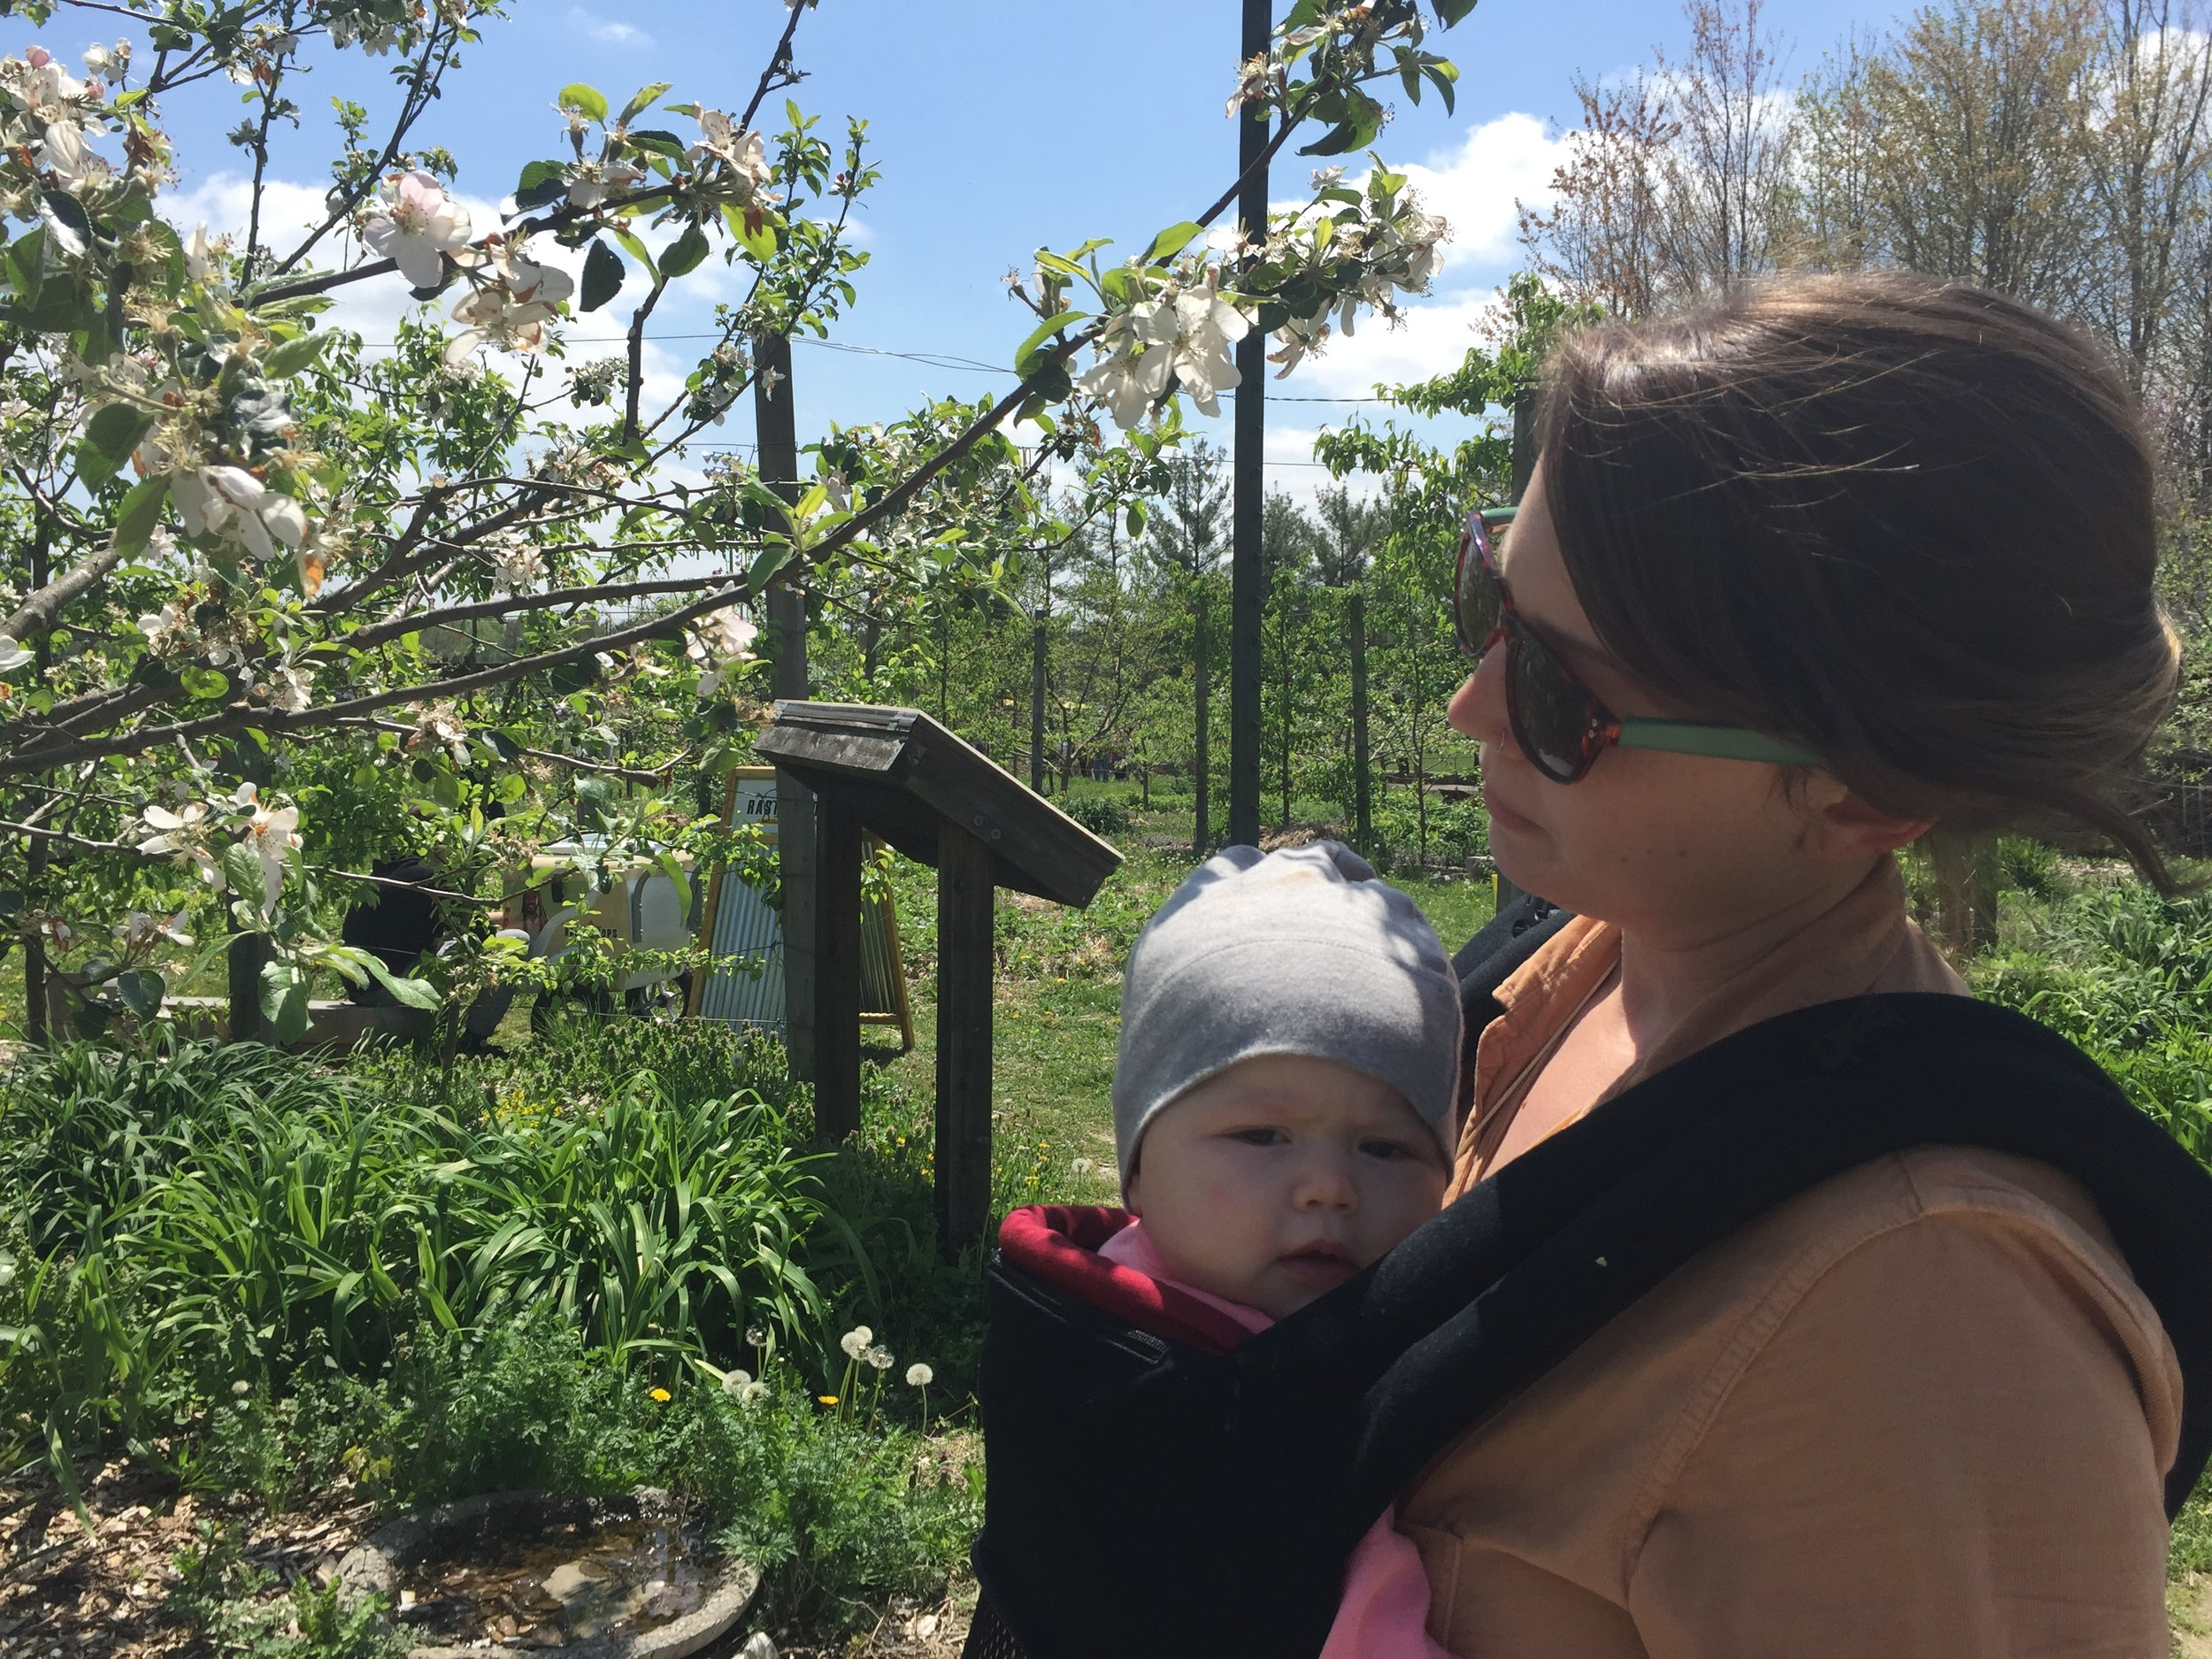 How my daughter first and most frequently navigated the Orchard.